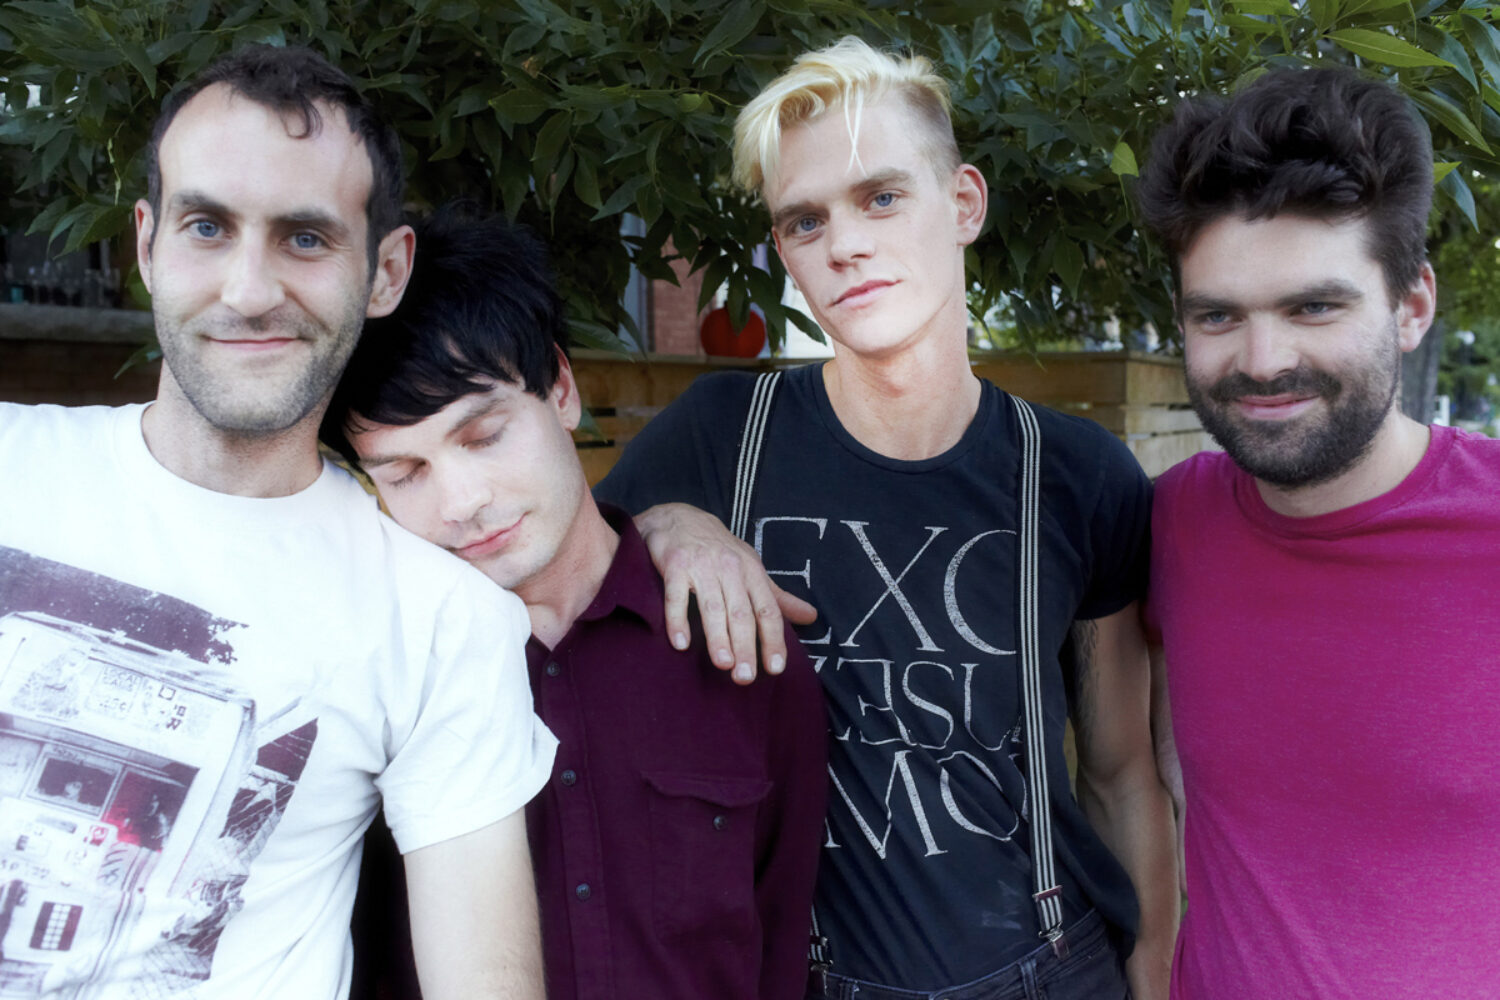 Gang of Four guitarist Andy Gill defends Viet Cong's stage name